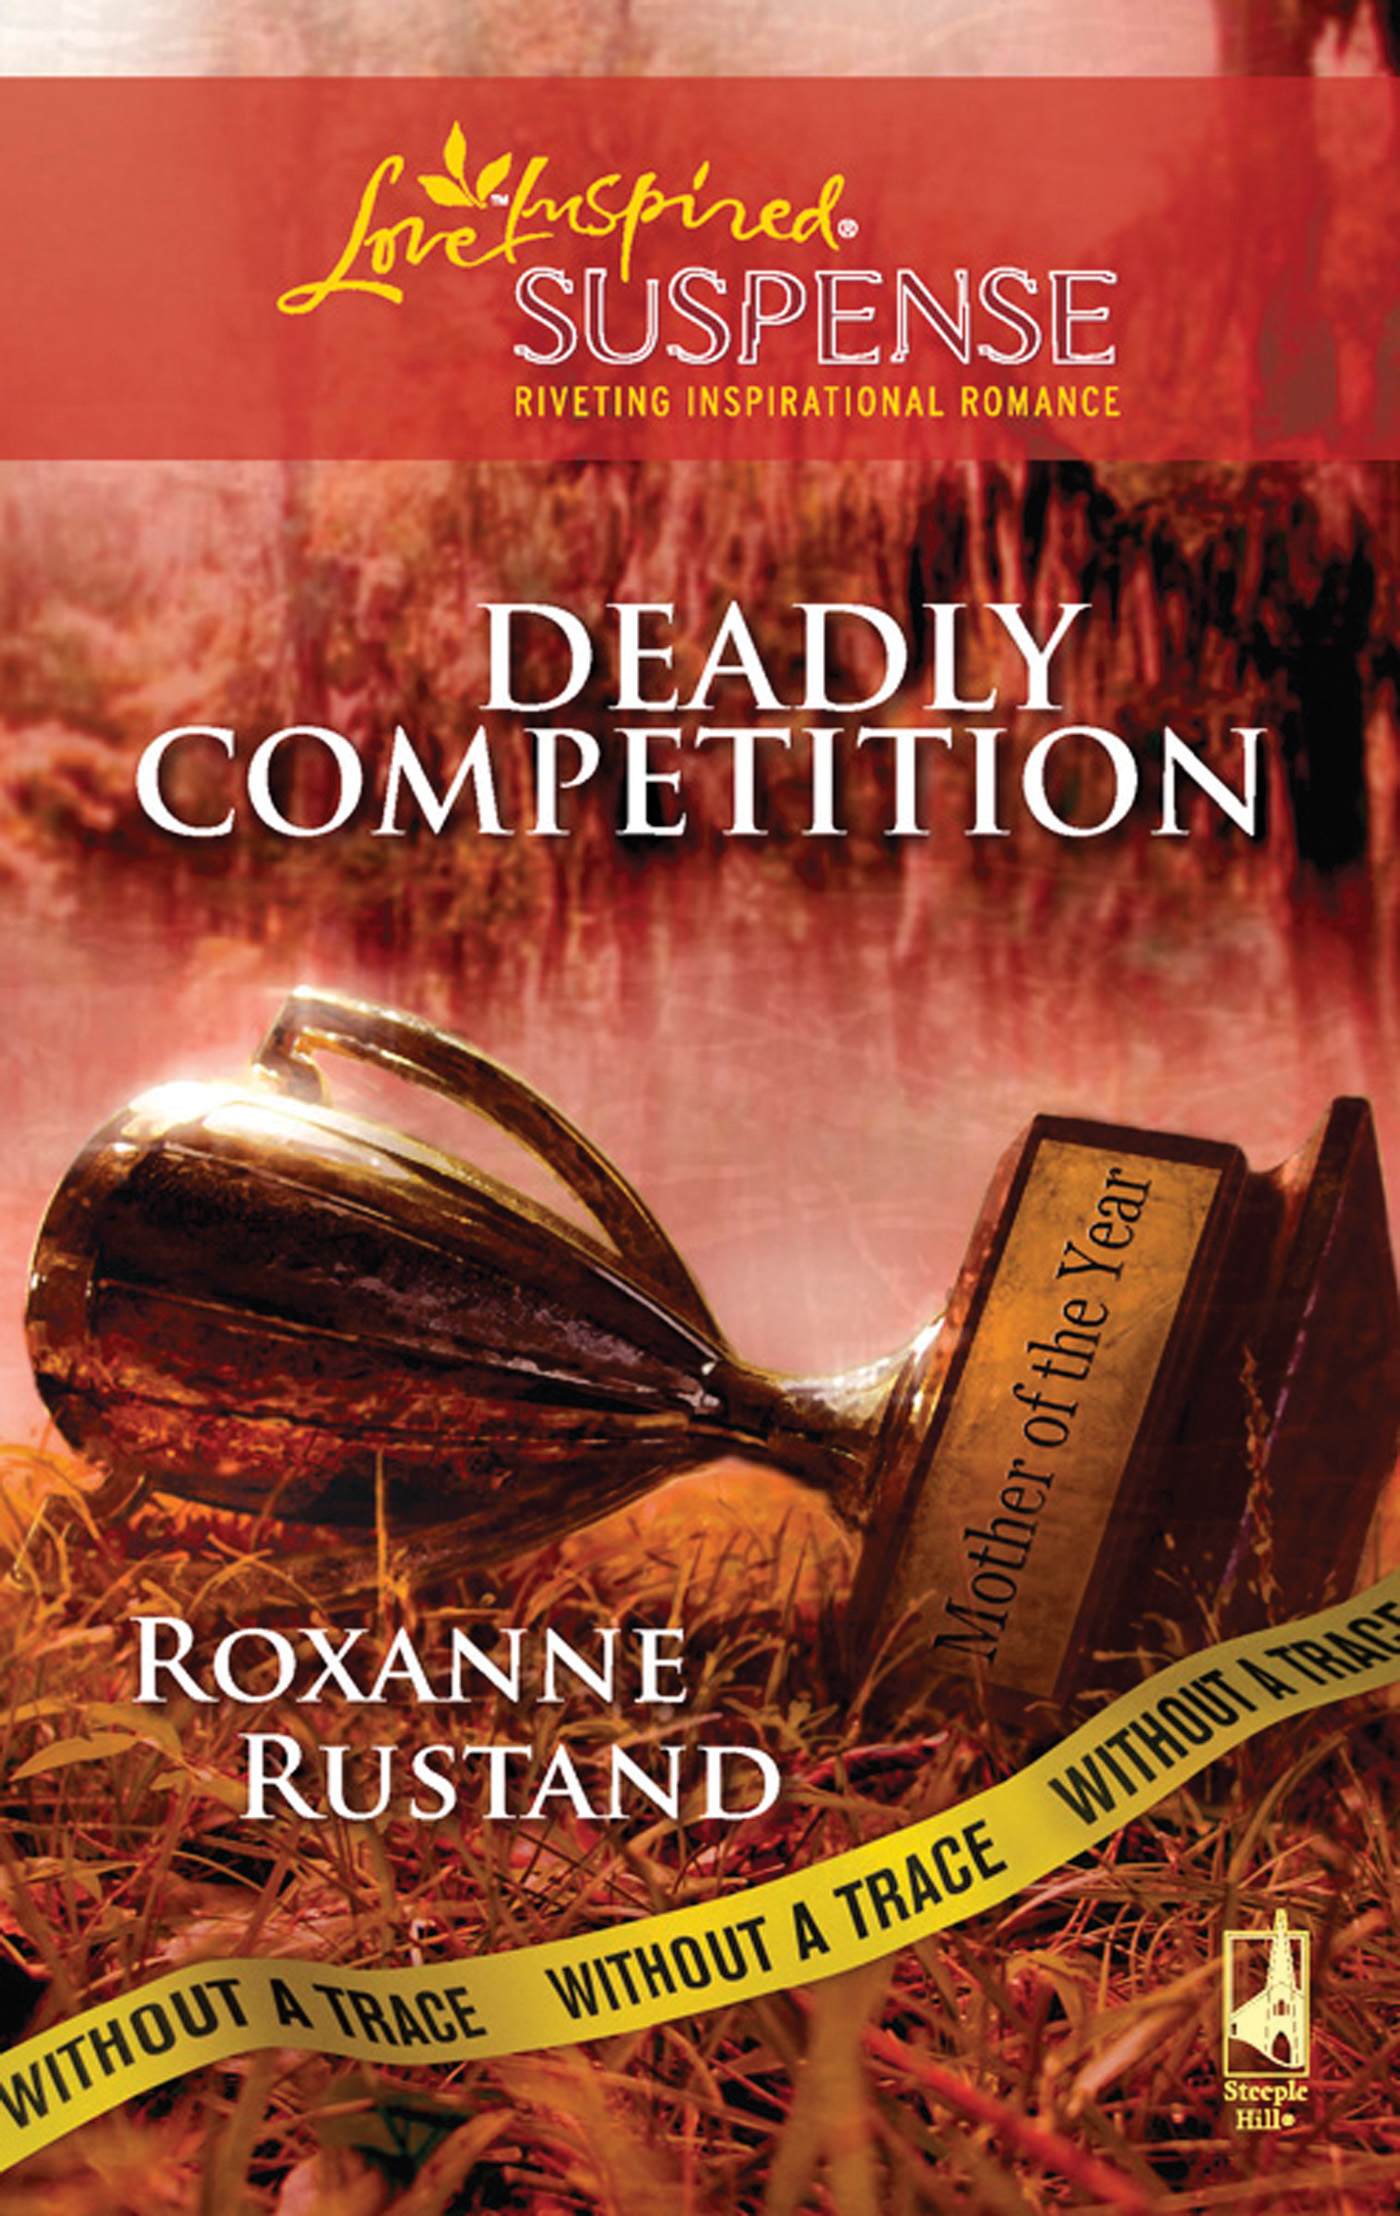 Deadly Competition (Mills & Boon Love Inspired Suspense) (Without a Trace - Book 5)